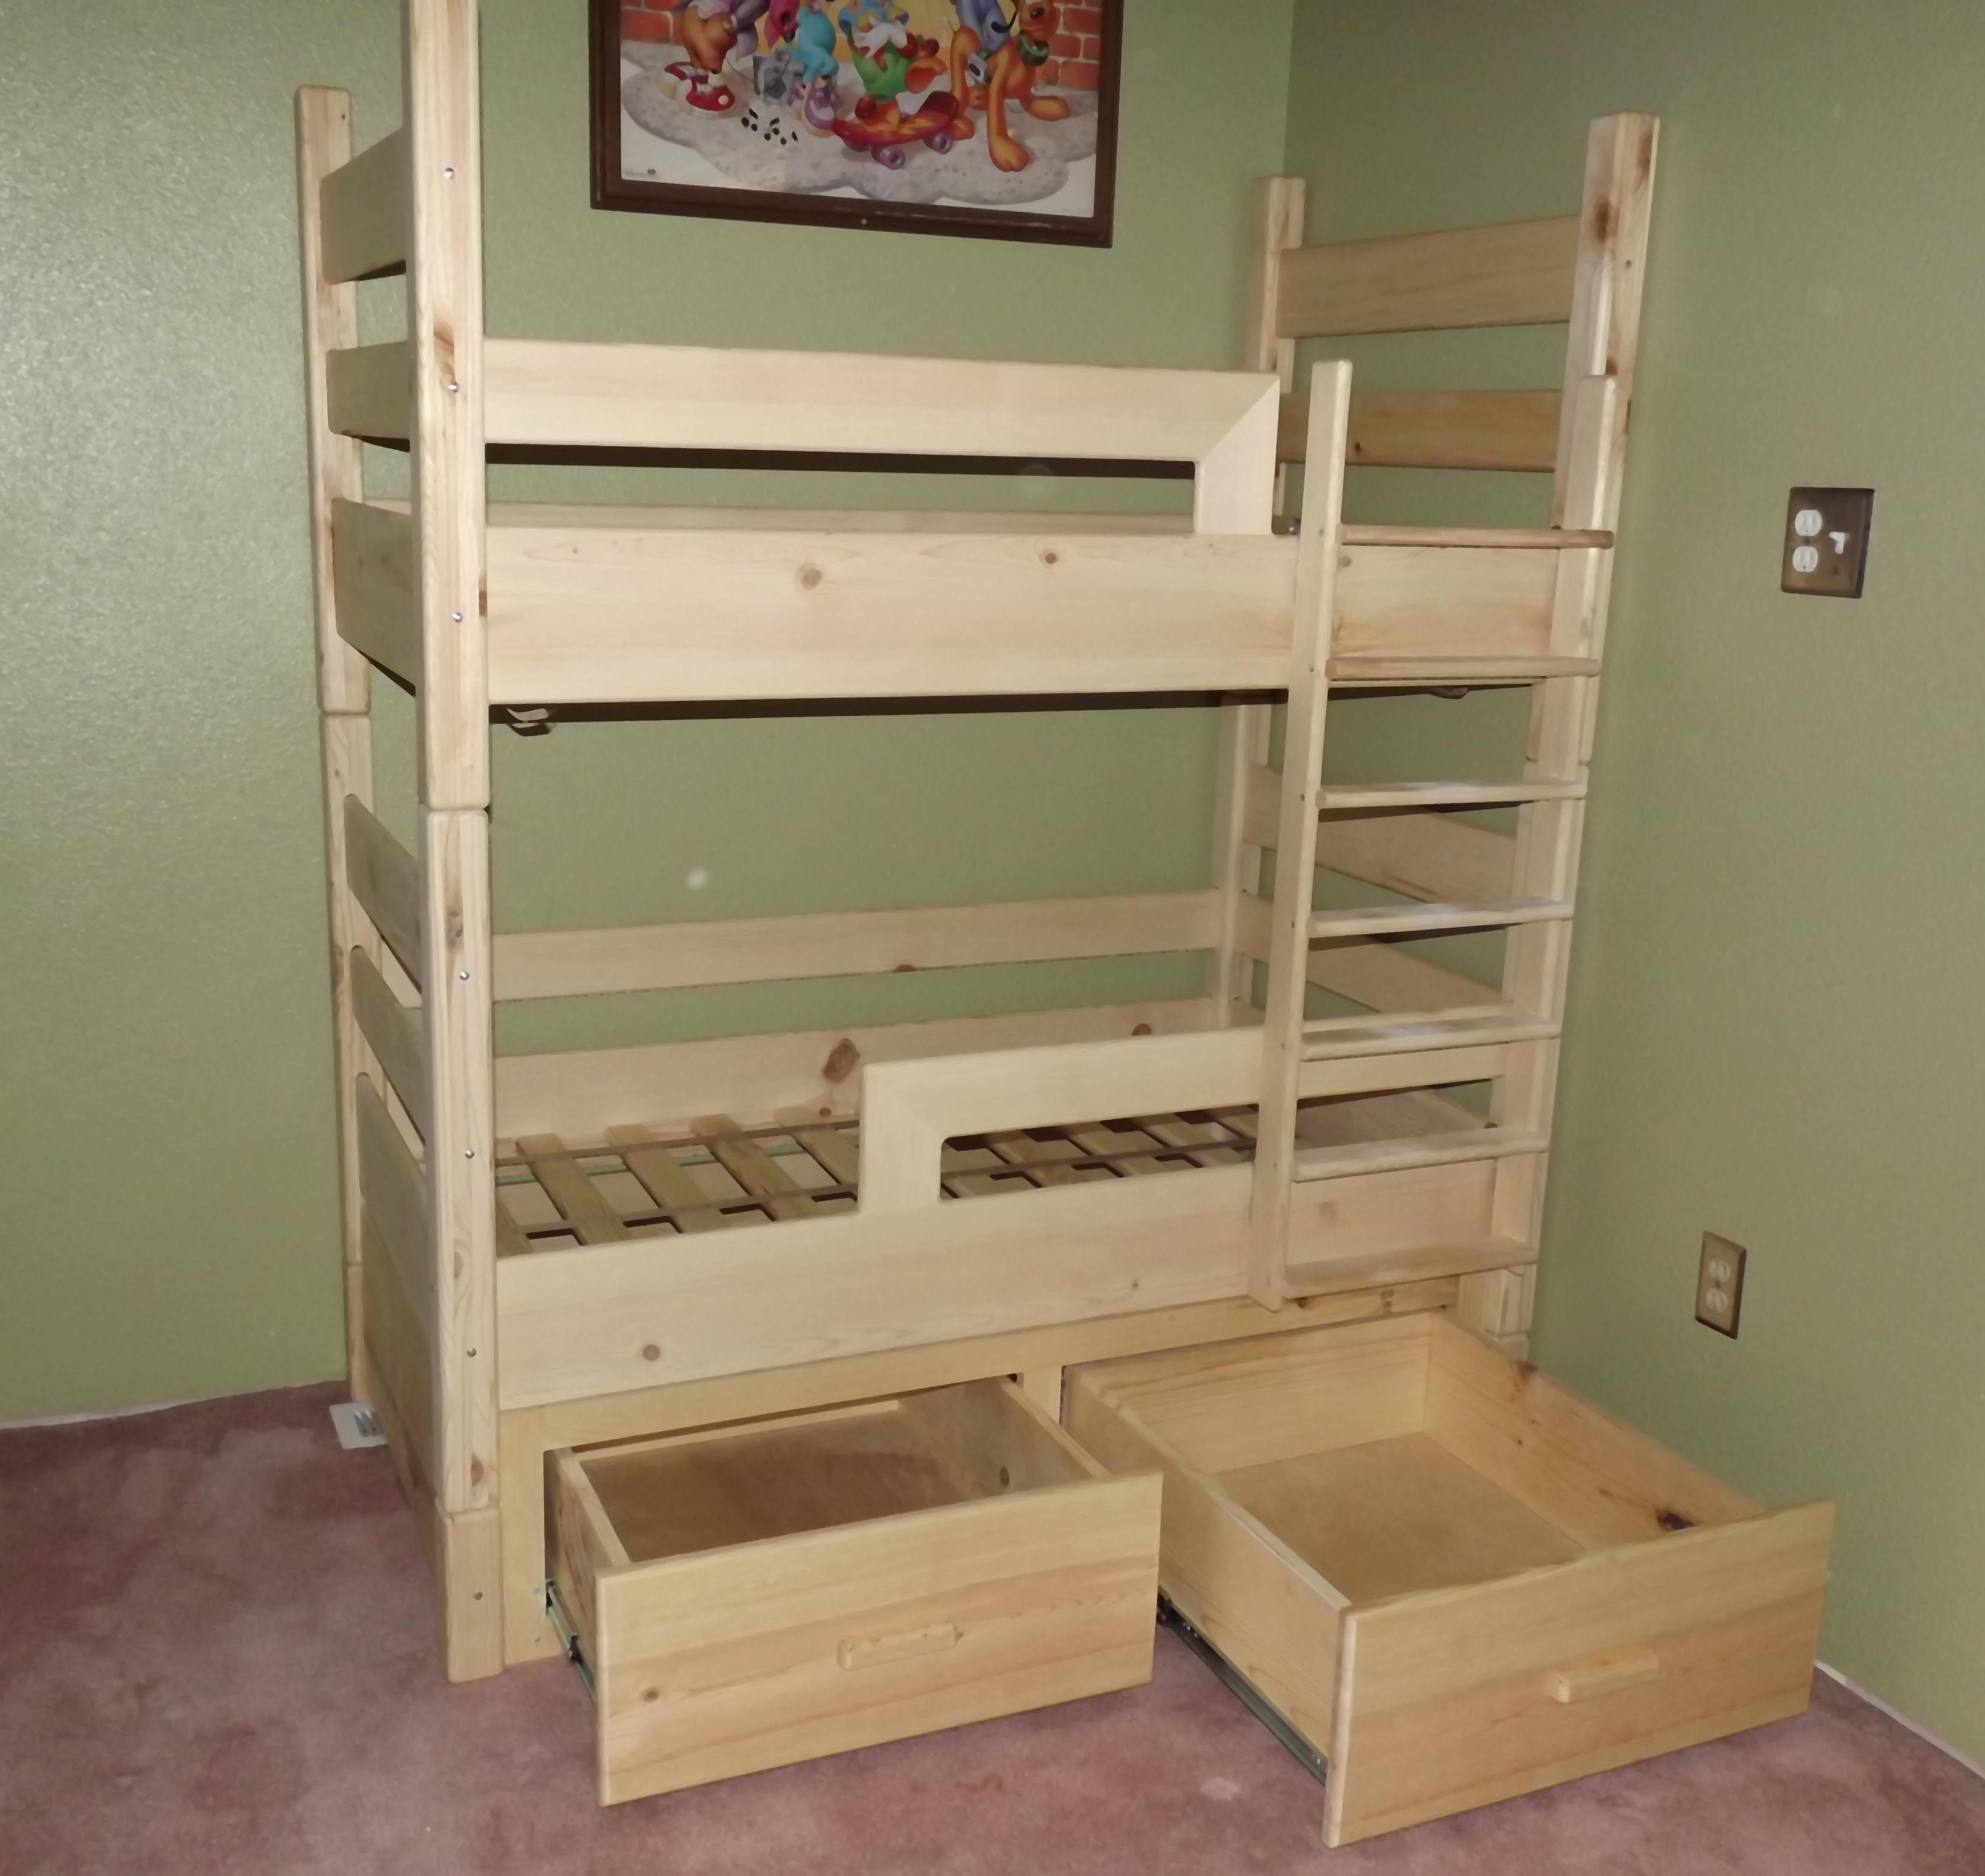 Toddler Bunks So Excited For A Cute Set Of Toddler Bunk Beds For My 2